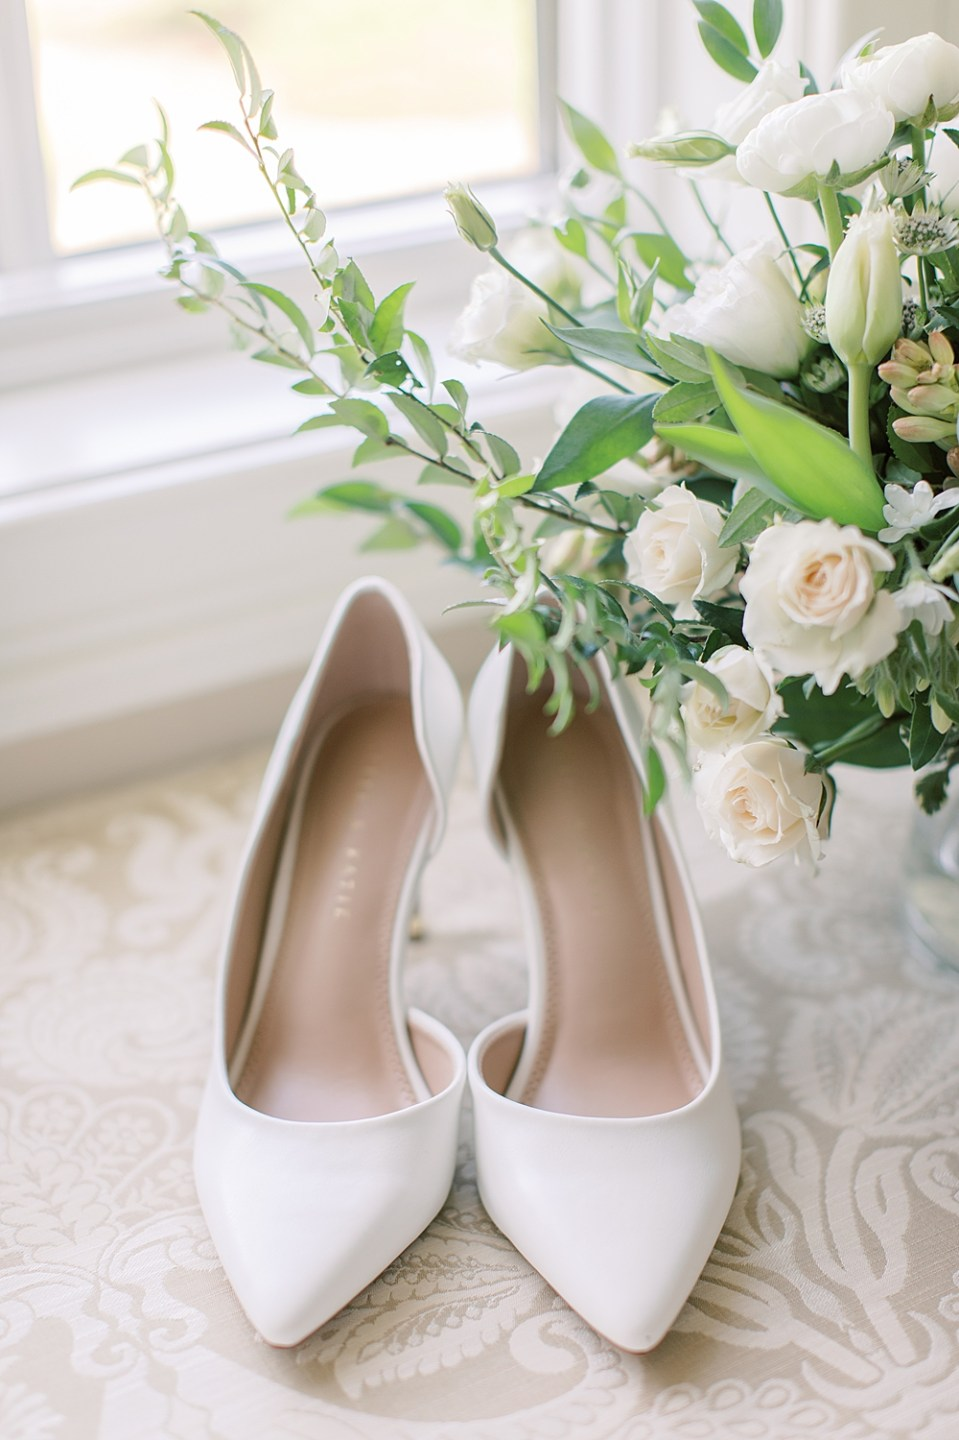 white bridal shoes | wedding details | ashford estate wedding photographer sarah canning